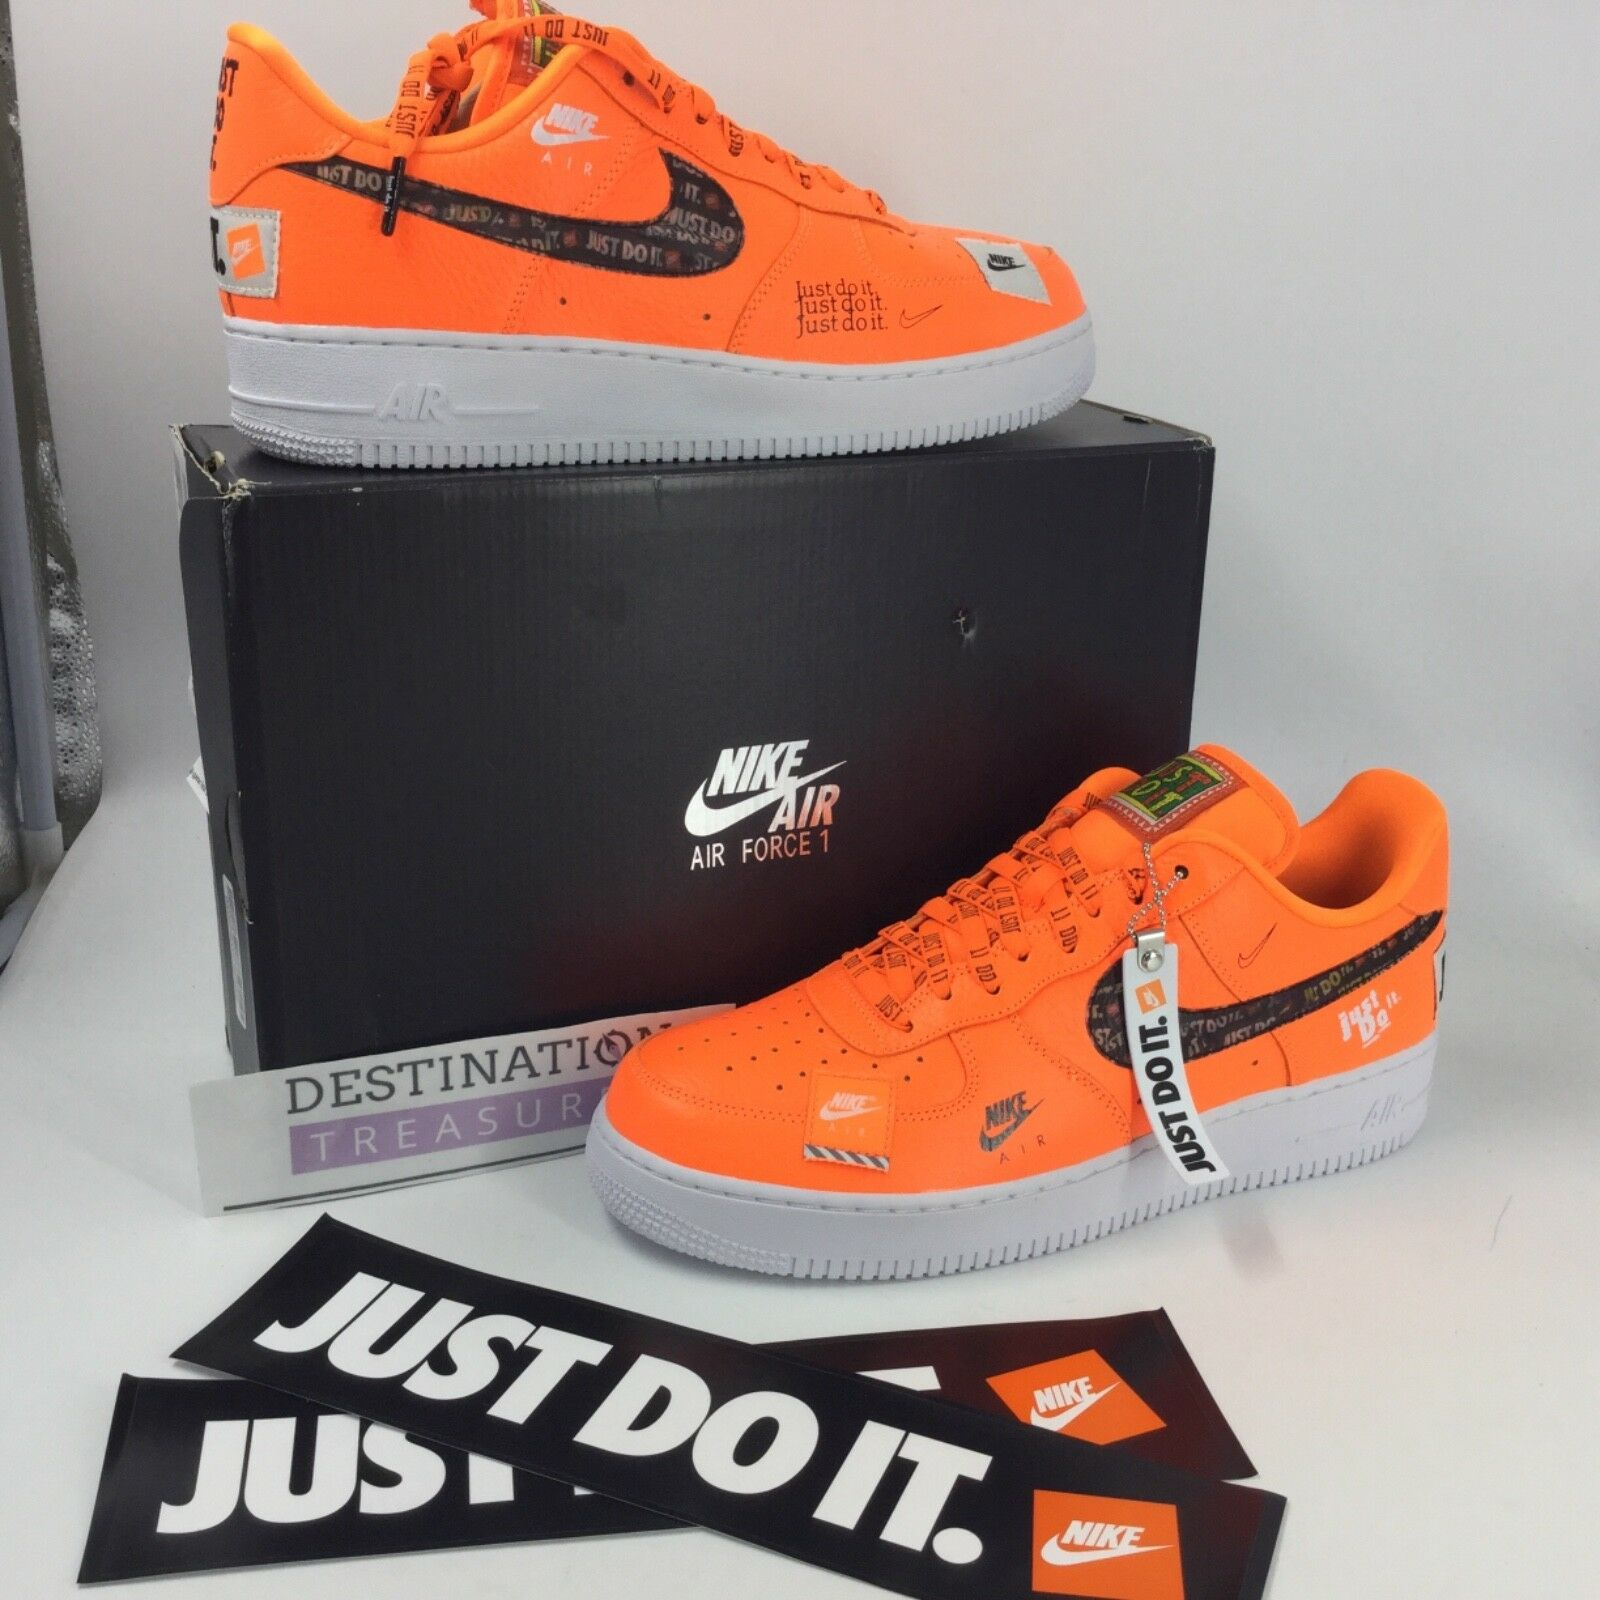 Nike Air Force 1 AF1 Sneakers JUST DO IT Orange 1st Ed Men 11.5 Keychain JDI